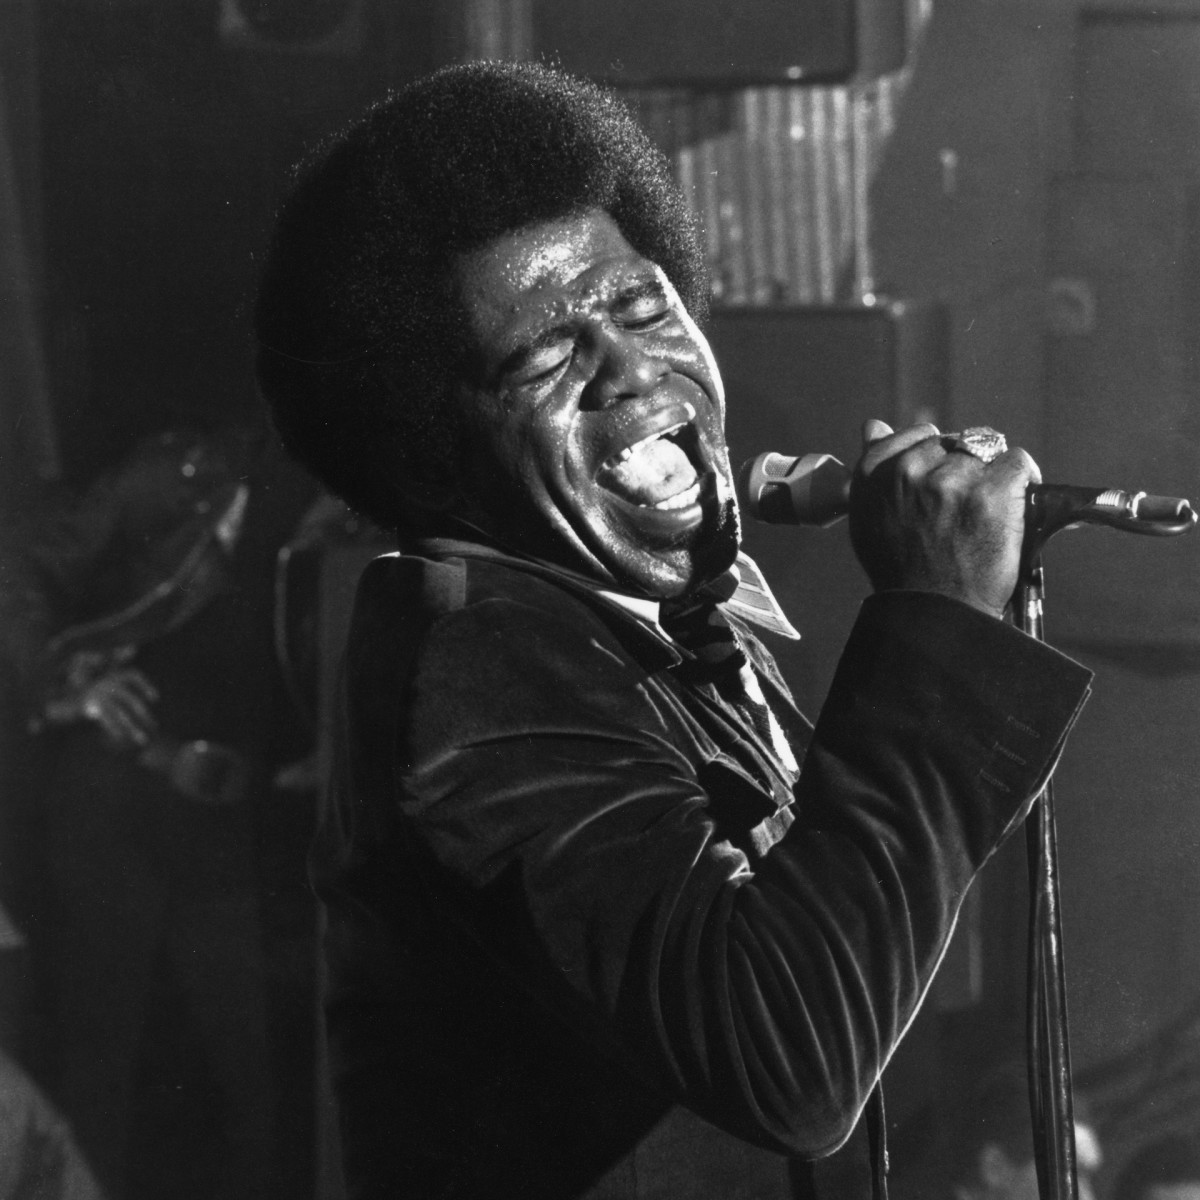 James Brown - Say It Loud, I'm Black and I'm Proud